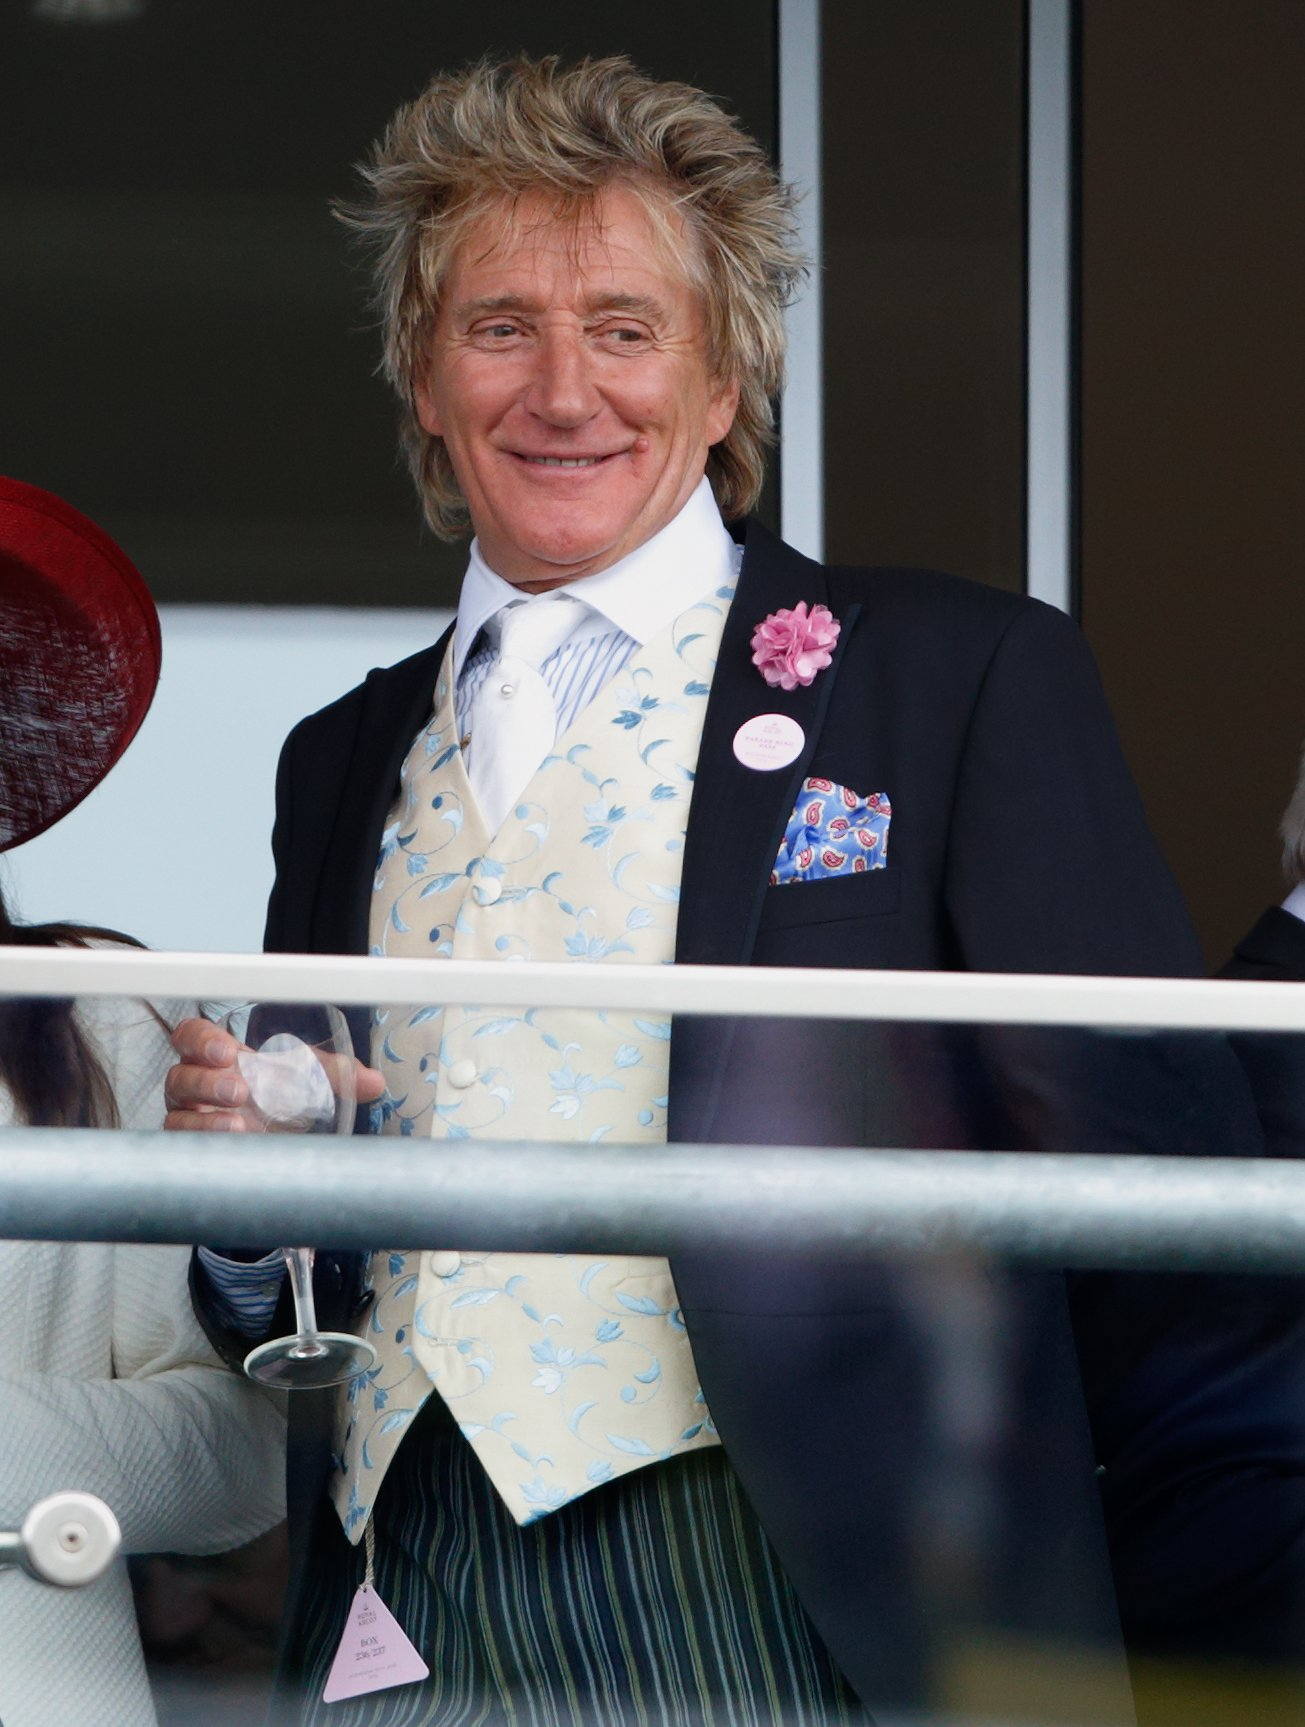 Sir Rod Stewart attends day 2 of the Royal Ascot at Ascot Racecourse on June 15, 2016 in England | Photo: Getty Images